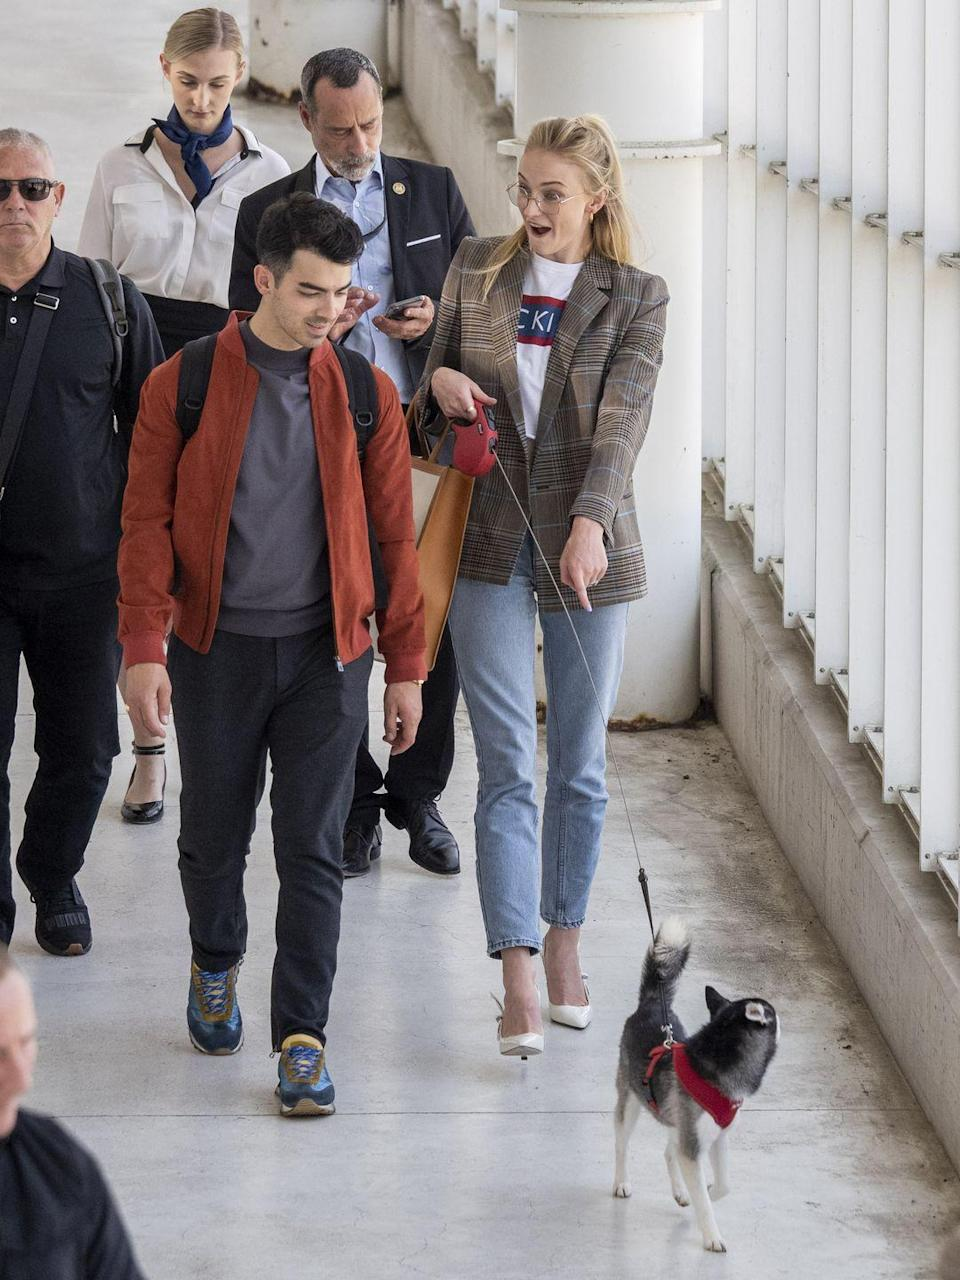 """<p>Sophie and Joe are dog lovers, and were proud parents to two Alaskan Klei Klai dogs - one, presumed to be Porky Basquit - <a href=""""https://www.elle.com/uk/life-and-culture/wedding/a28243451/sophie-turner-wedding-dress-joe-jonas-porky-basquit/"""" rel=""""nofollow noopener"""" target=""""_blank"""" data-ylk=""""slk:was even a groomsman on their wedding day in July."""" class=""""link rapid-noclick-resp"""">was even a groomsman on their wedding day in July. </a></p><p>Sadly, their dog Waldo was tragically killed in traffic in New York shortly after they married. The<a href=""""https://www.elle.com/uk/life-and-culture/a28539094/sophie-turner-joe-jonas-matching-tattoos-dead-dog/"""" rel=""""nofollow noopener"""" target=""""_blank"""" data-ylk=""""slk:couple commemorated him with matching tattoos"""" class=""""link rapid-noclick-resp""""> couple commemorated him with matching tattoos</a>, they shortly got a new puppy <a href=""""https://www.elle.com/uk/life-and-culture/a28605380/sophie-turner-joe-jonas-new-puppy/"""" rel=""""nofollow noopener"""" target=""""_blank"""" data-ylk=""""slk:who Turner took with her on holiday in August."""" class=""""link rapid-noclick-resp"""">who Turner took with her on holiday in August.</a></p>"""